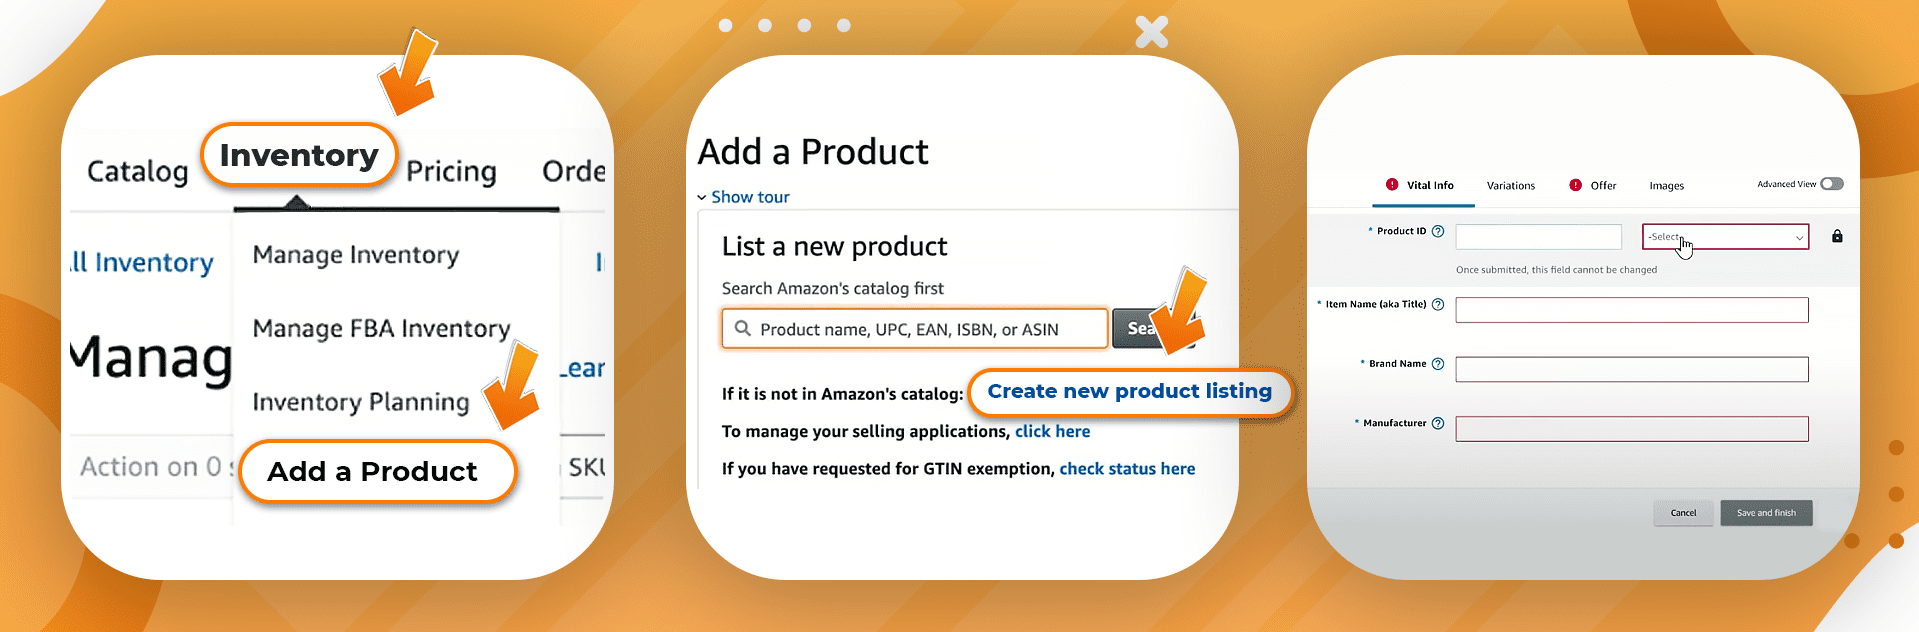 Amazon ASIN Add new product